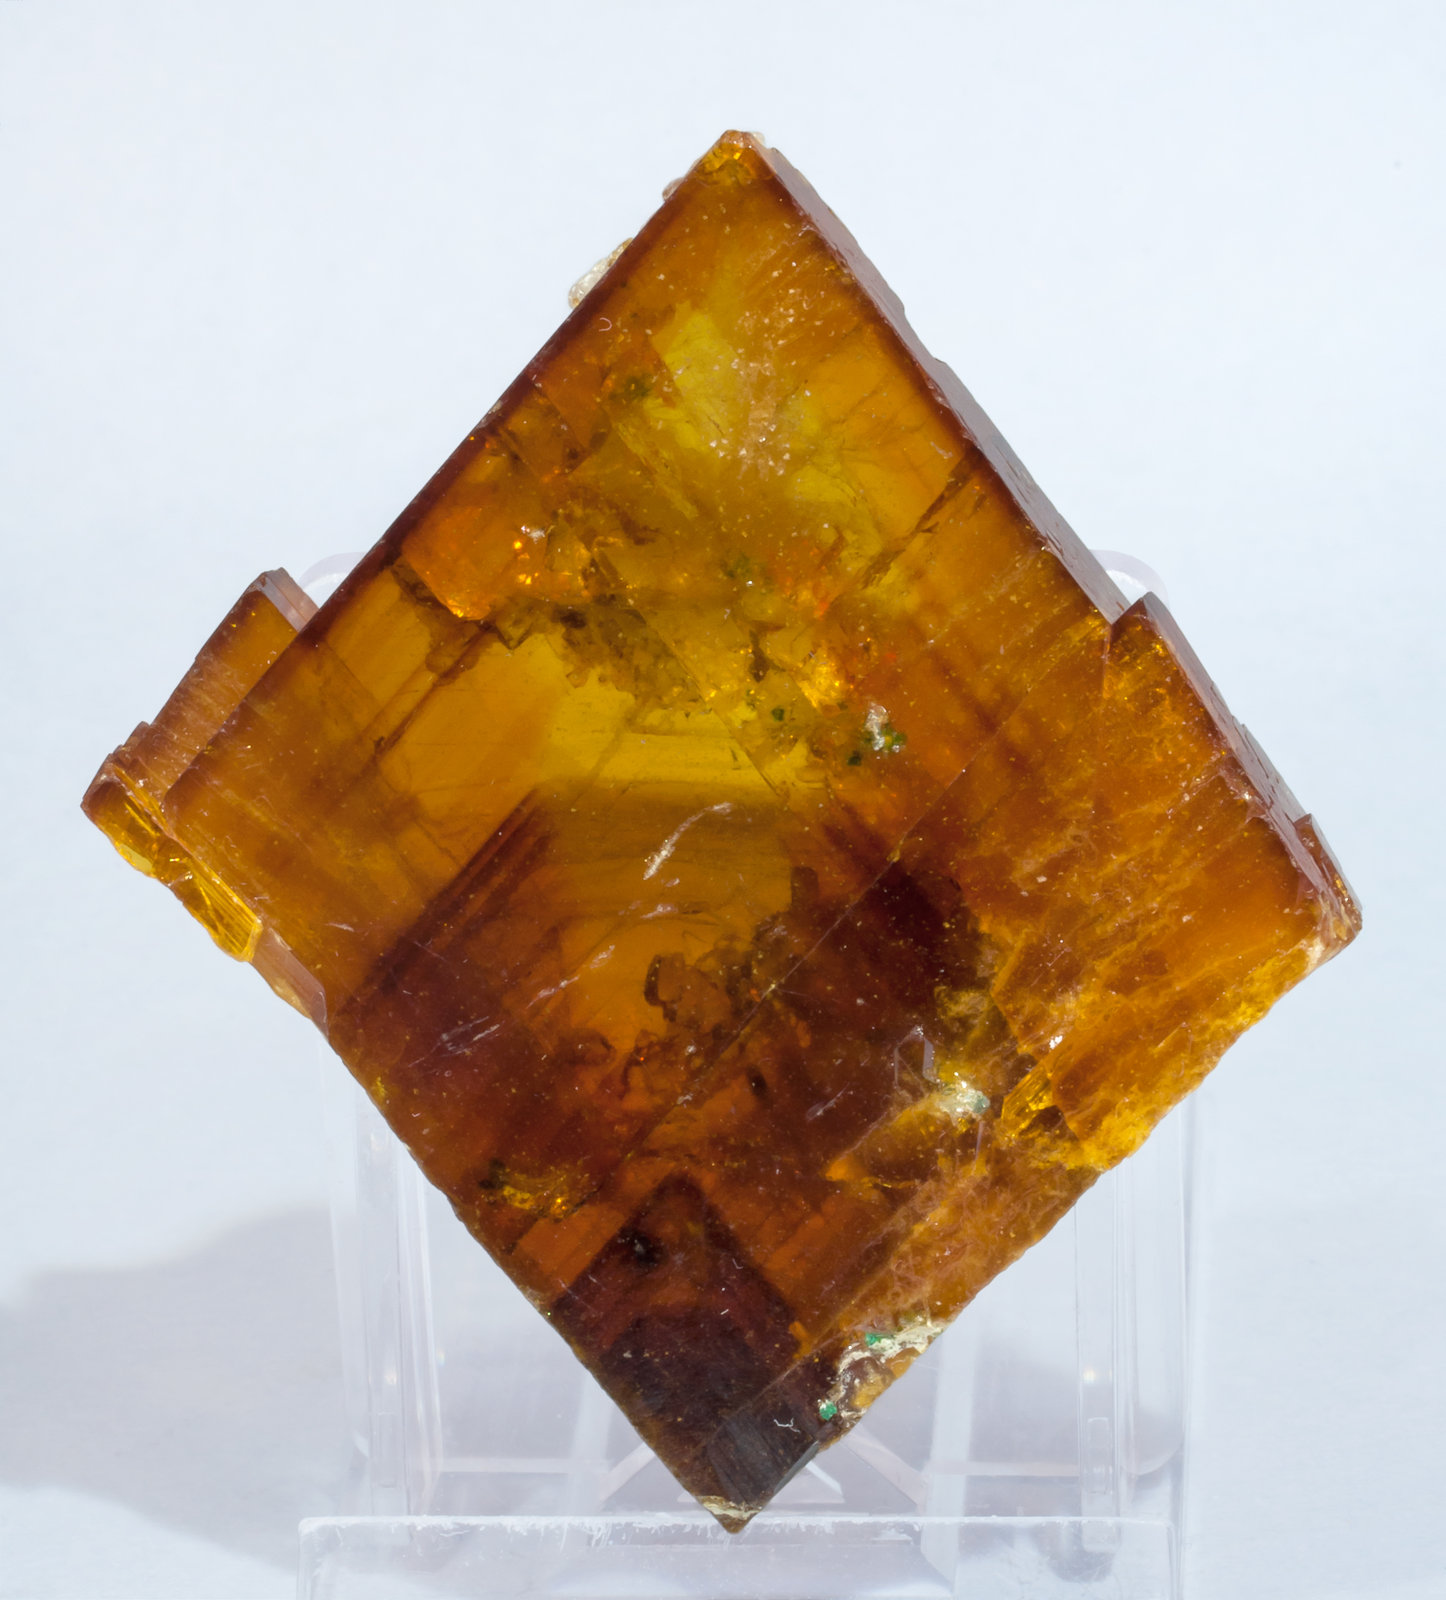 specimens/s_imagesAK9/Baryte-ND92AK9f.jpg